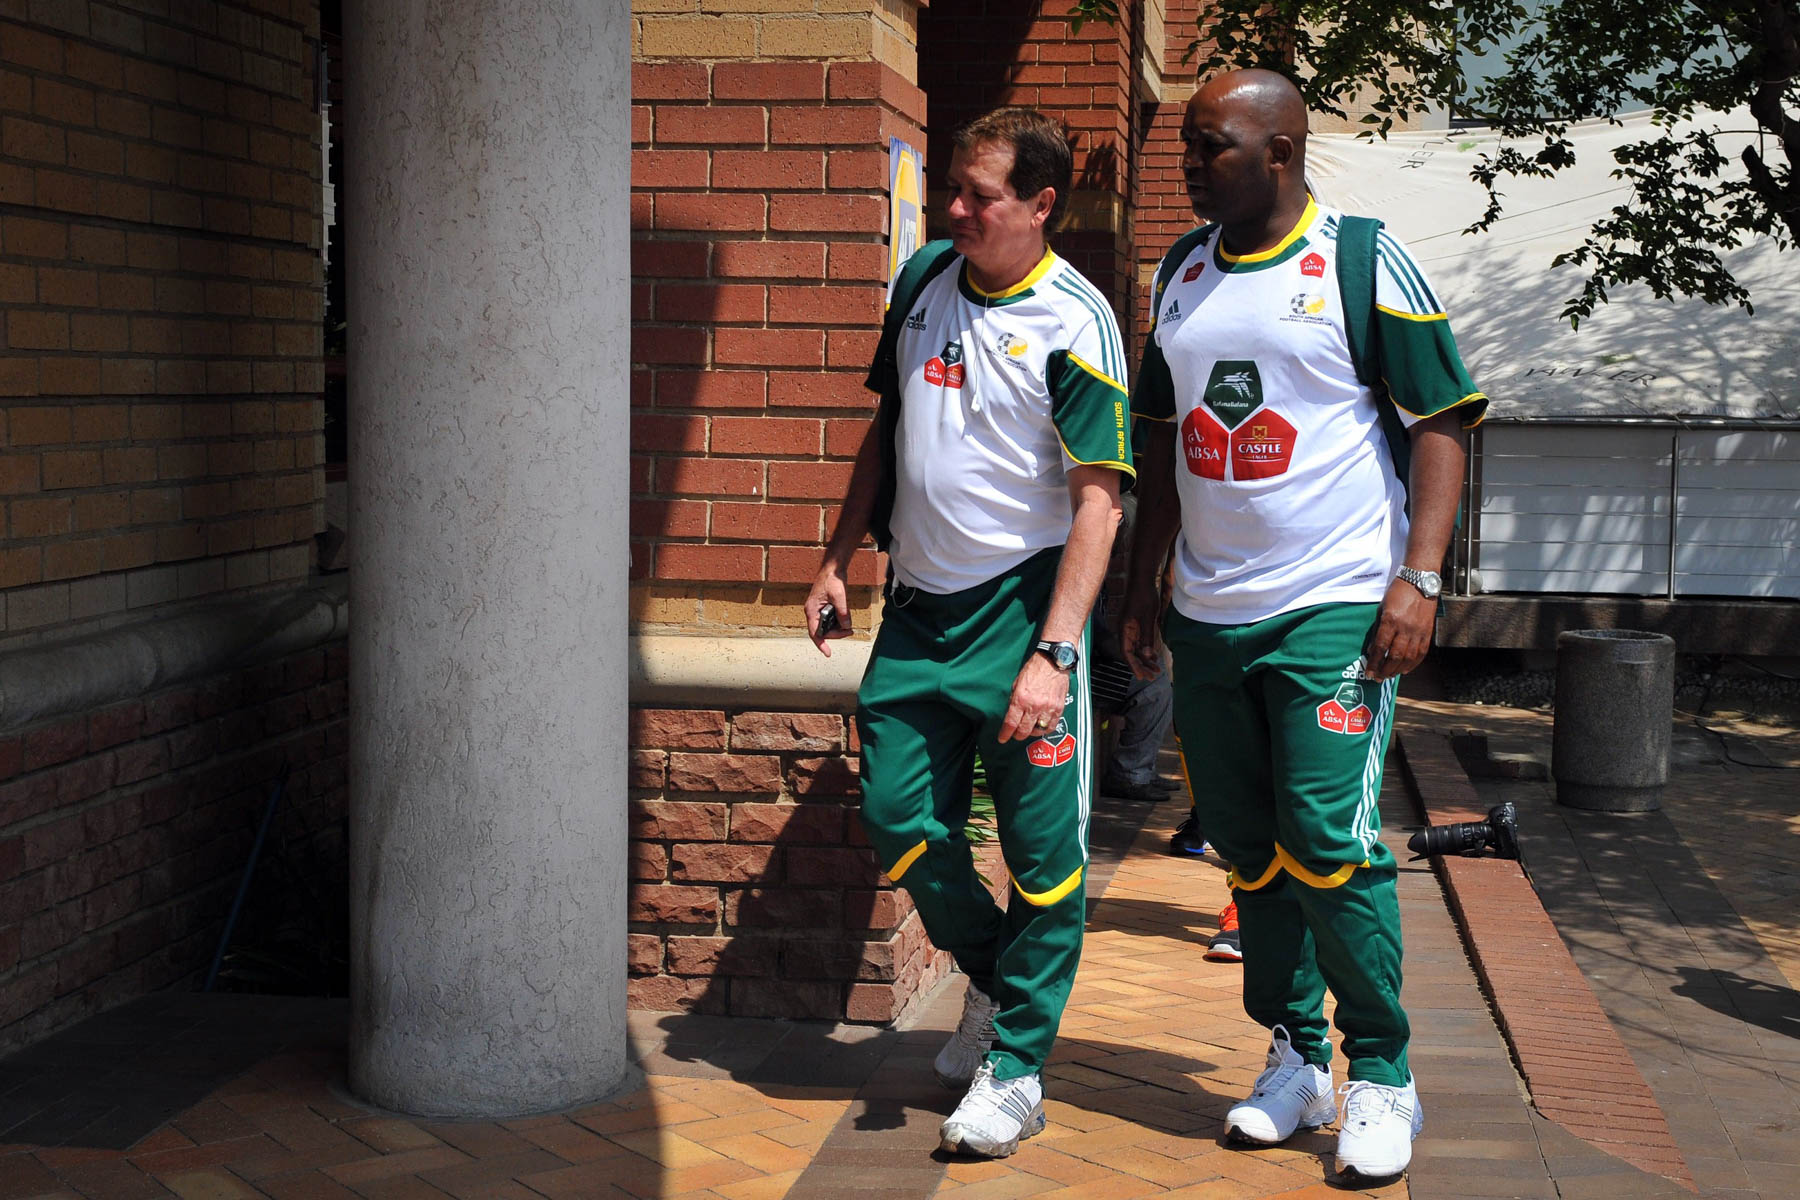 6 October 2010: From left, Bafana assistant coach Jairo Leal and coach Pitso Mosimane arrive for a team gym session in Fourways, Johannesburg. (Photograph by Duif du Toit/ Gallo Images)